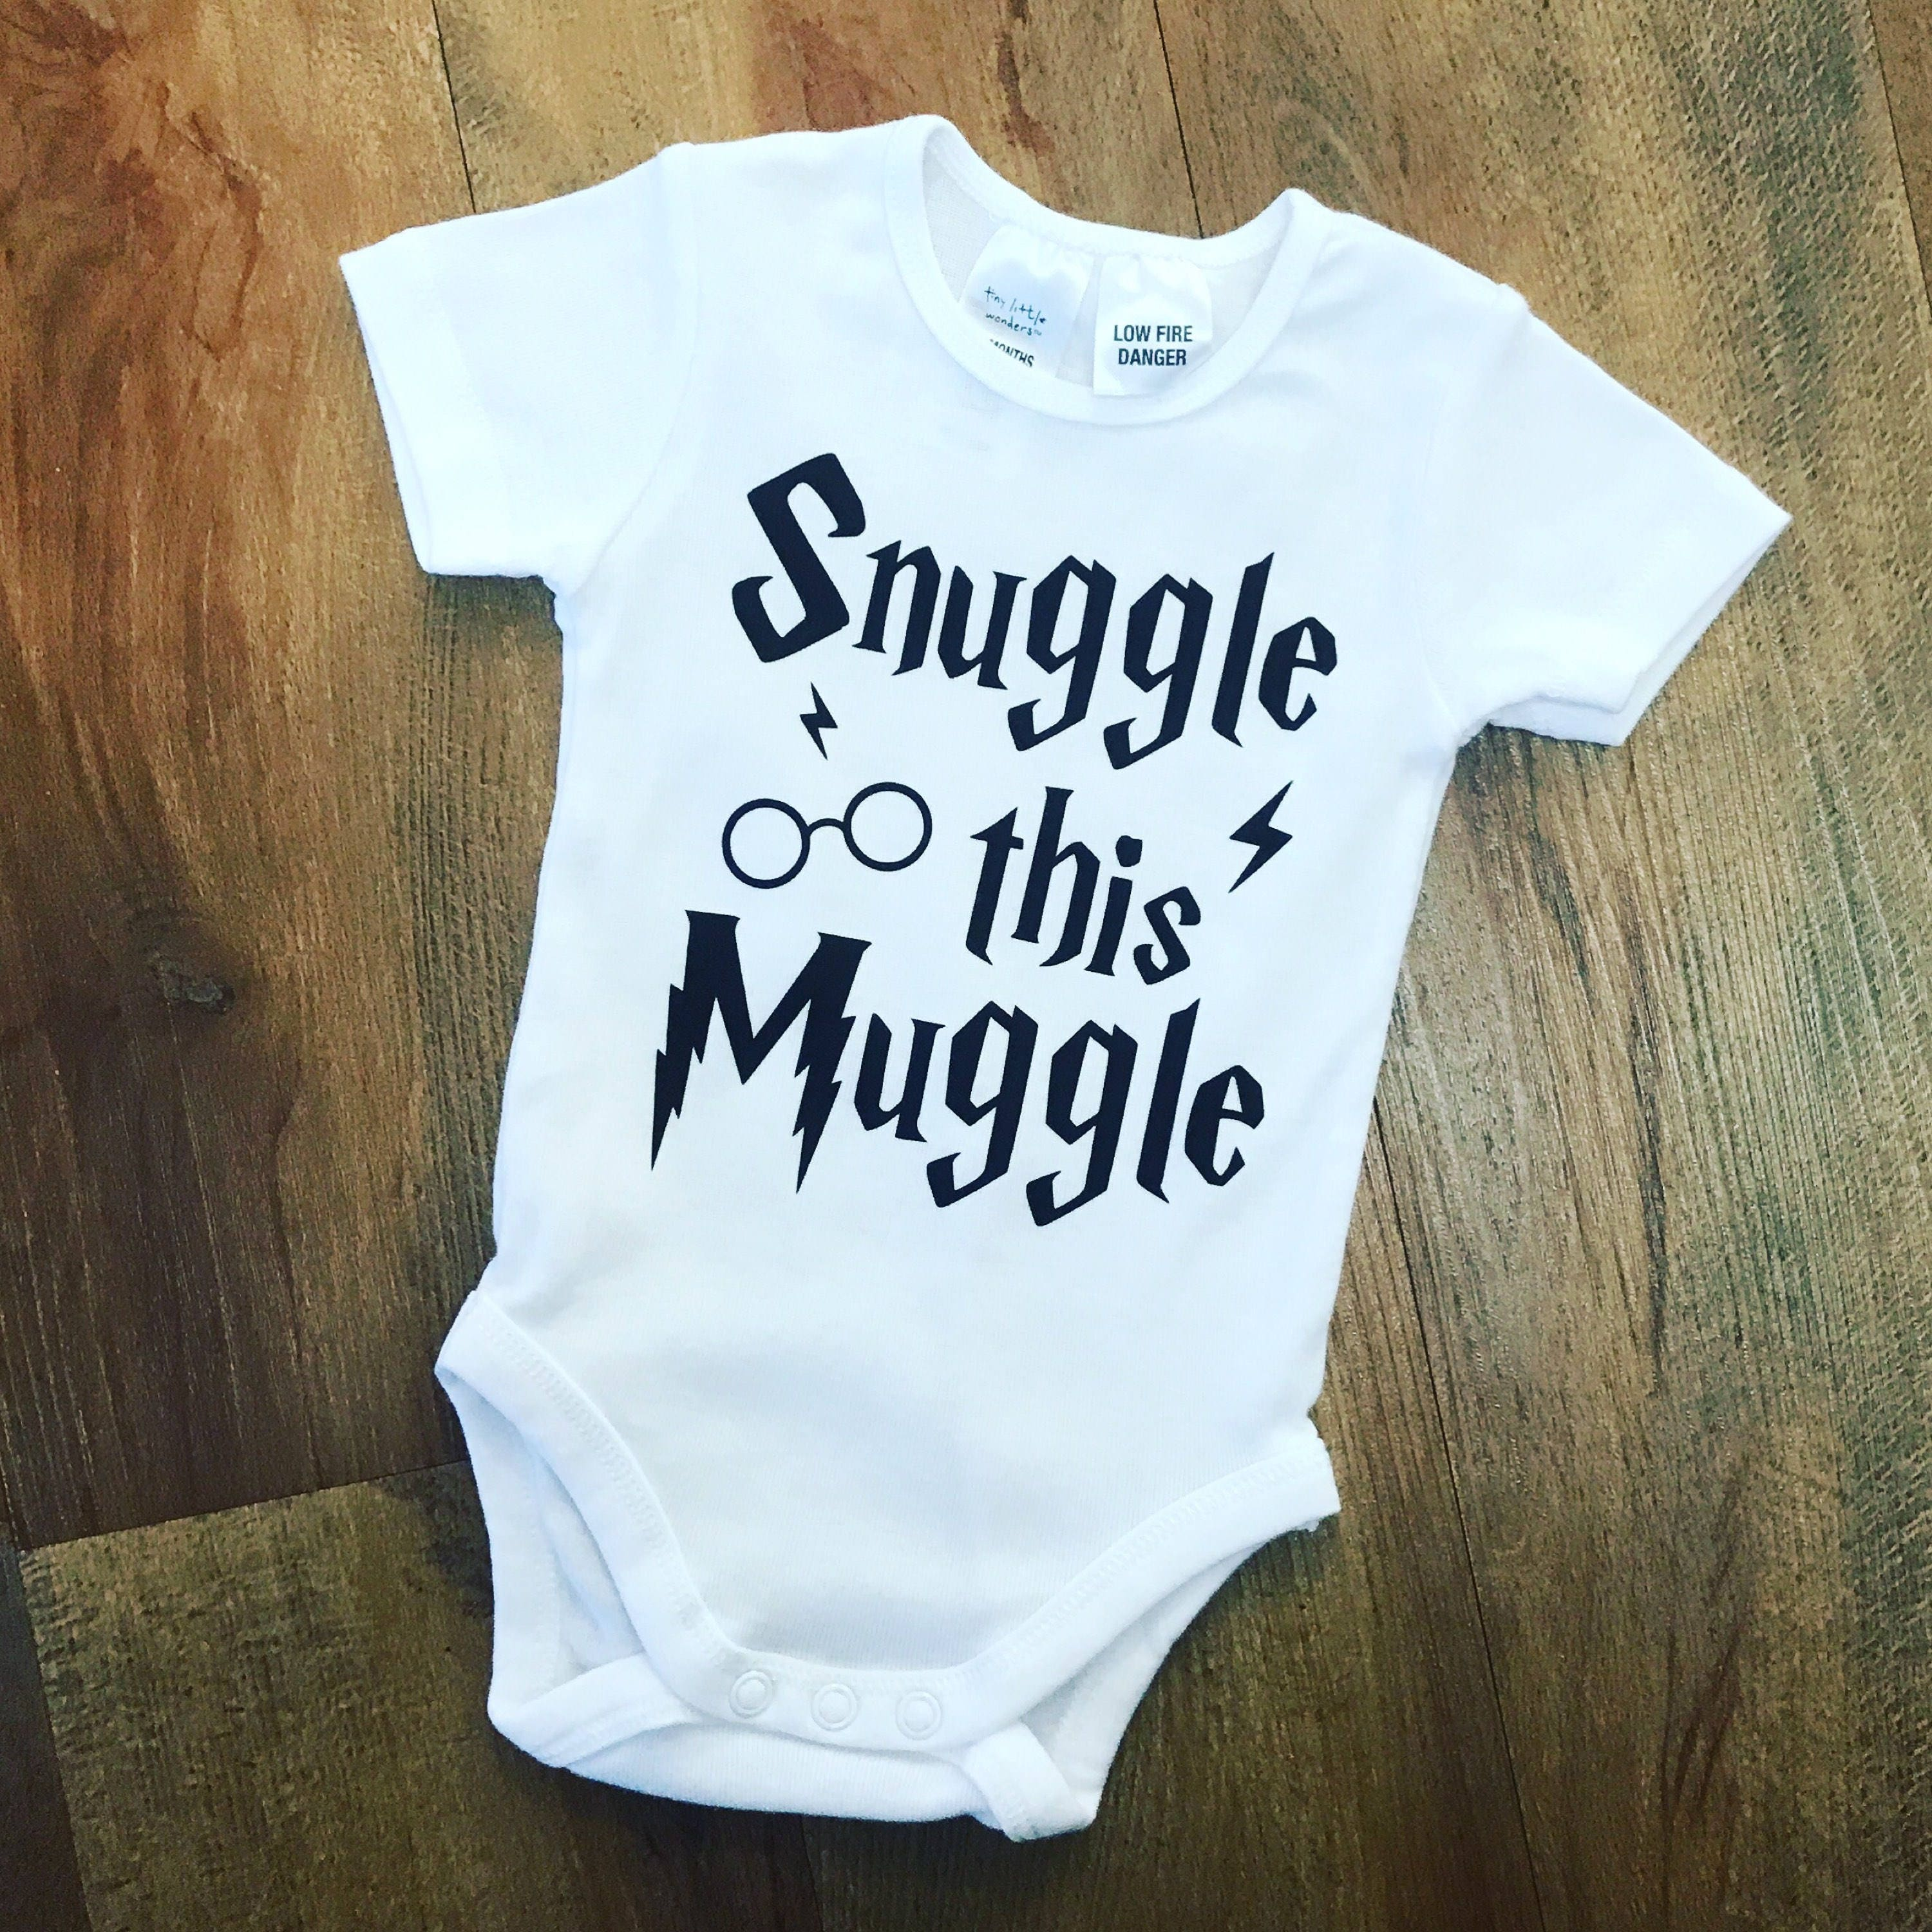 e27a666035e Snuggle this Muggle Baby Onesie Baby Romper Harry Potter